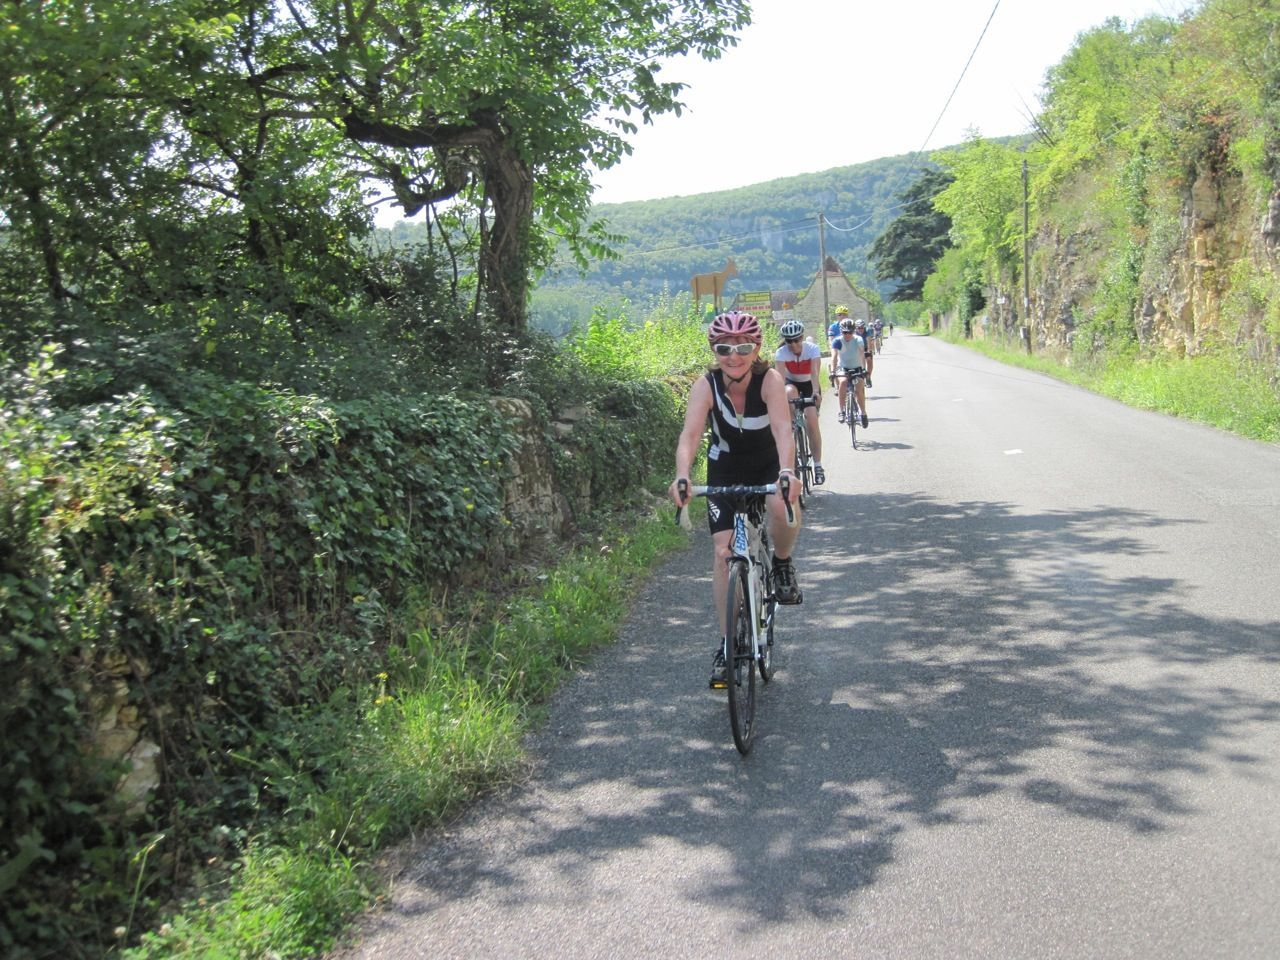 _Staff.348.18302.jpg - France - Haute Dordogne - Guided Road Cycling Holiday - Road Cycling